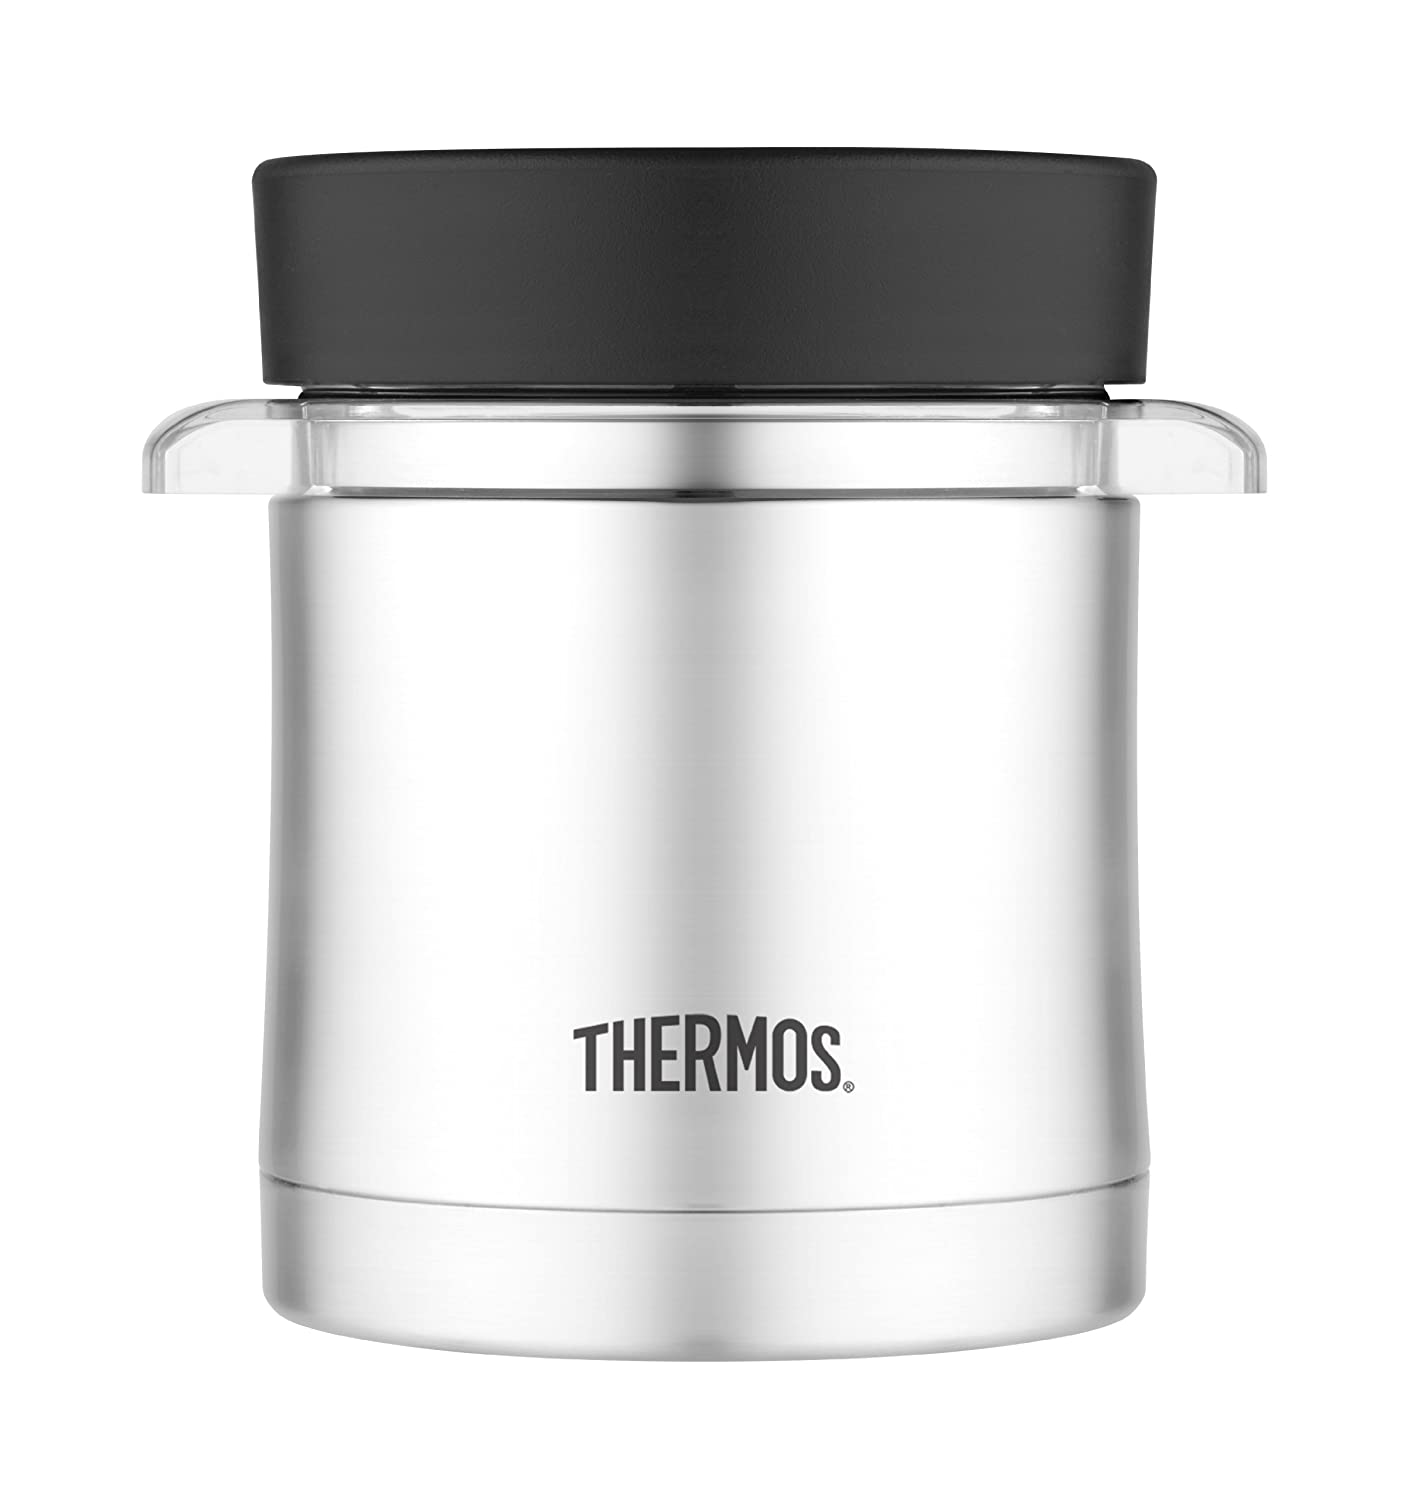 Thermos Food Jar Vacuum Container Insulation Microwavable